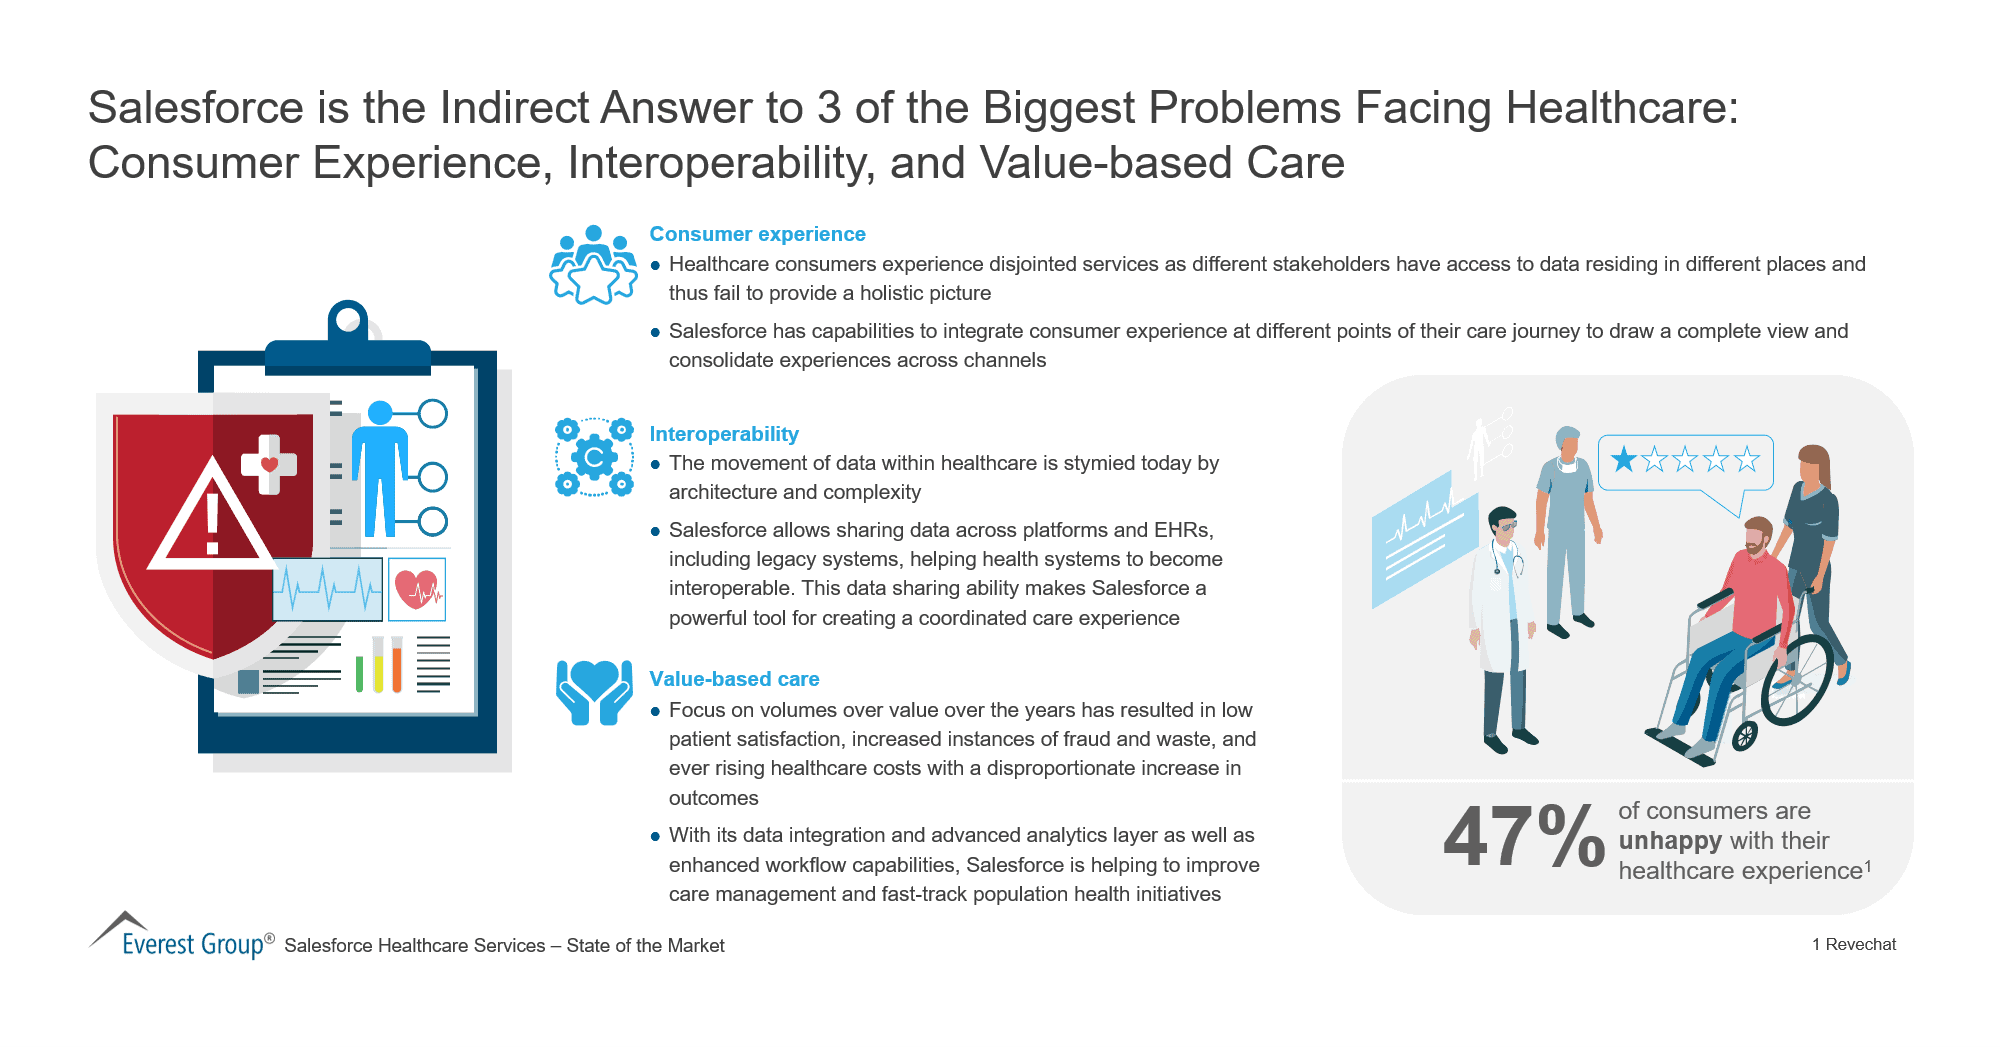 Salesforce is the Indirect Answer to 3 of the Biggest Problems Facing Healthcare